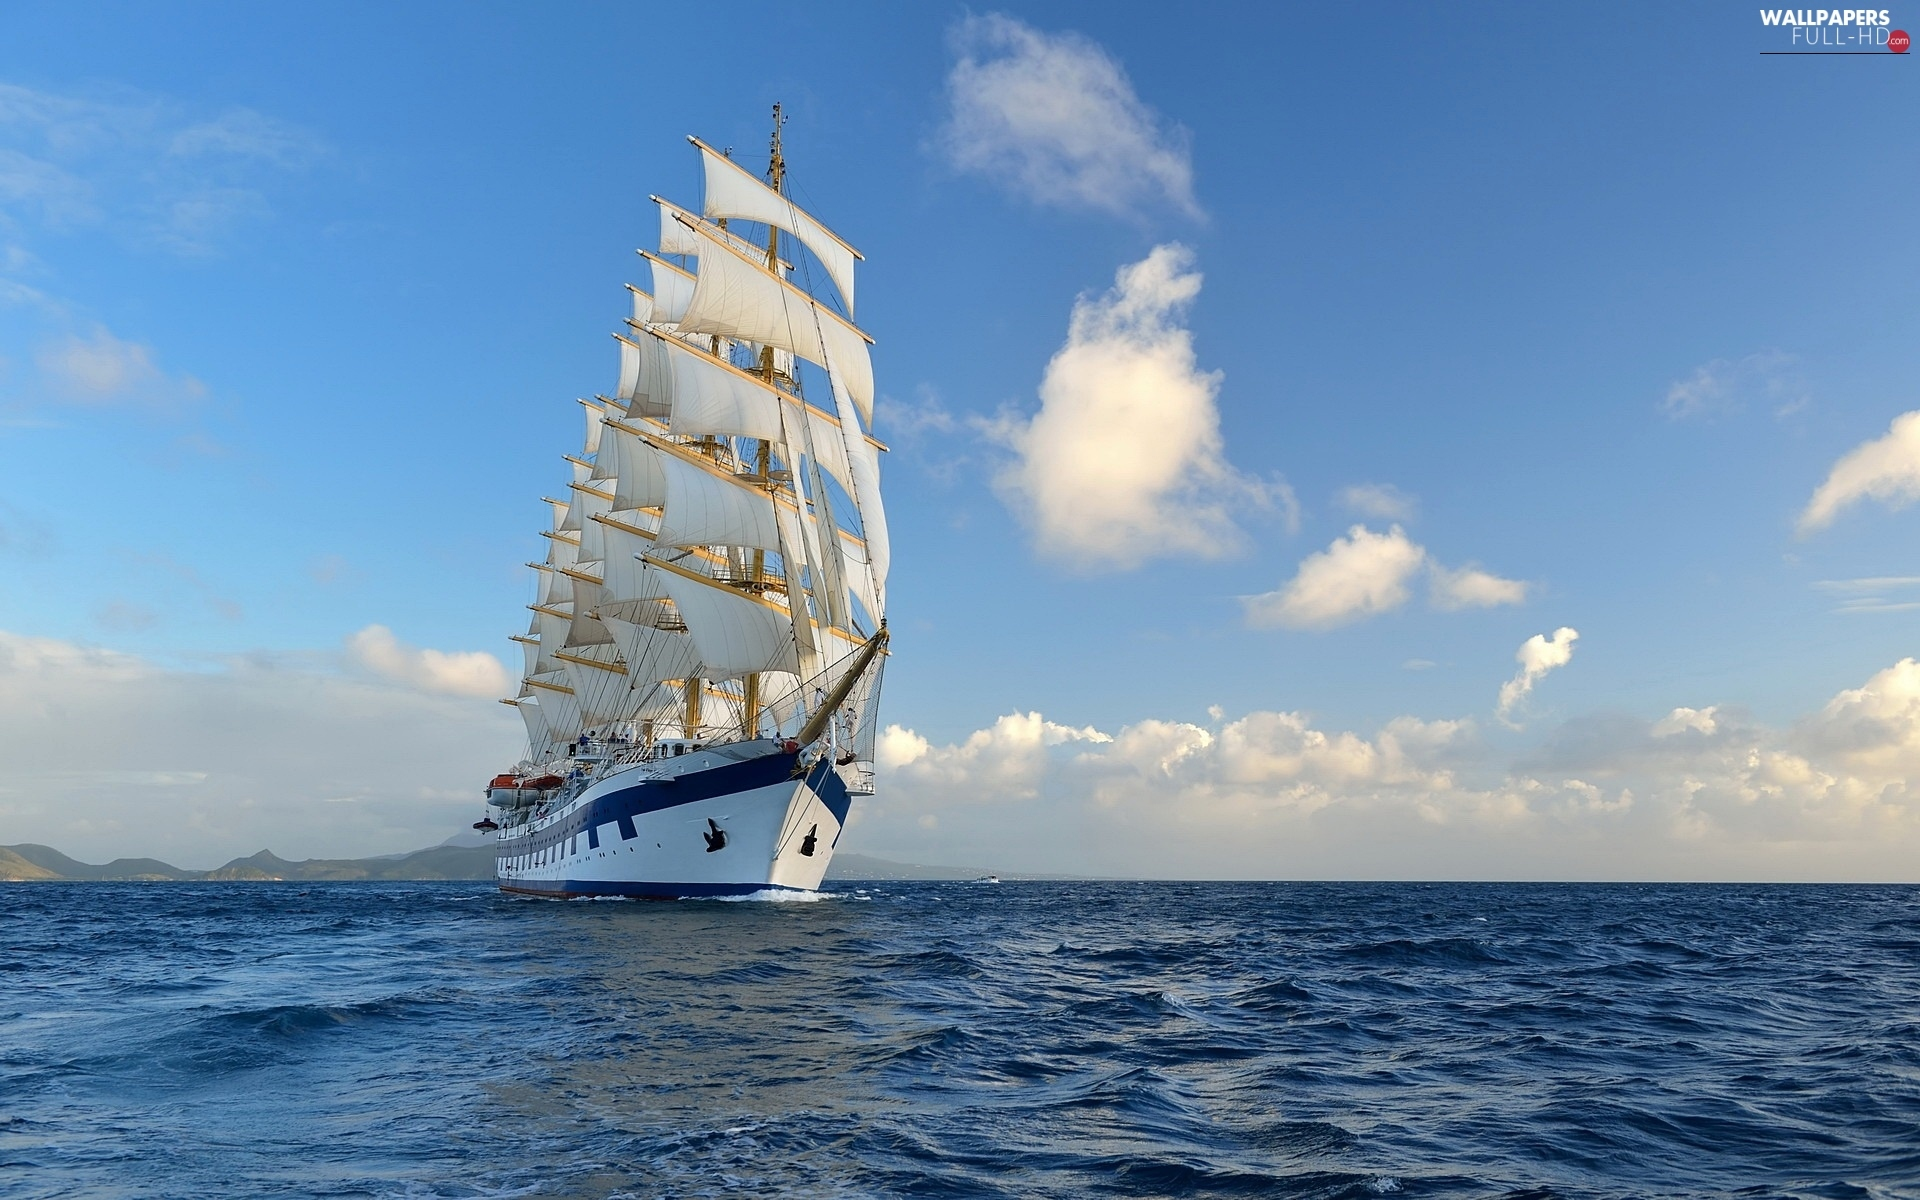 Ship, sailing vessel, sea